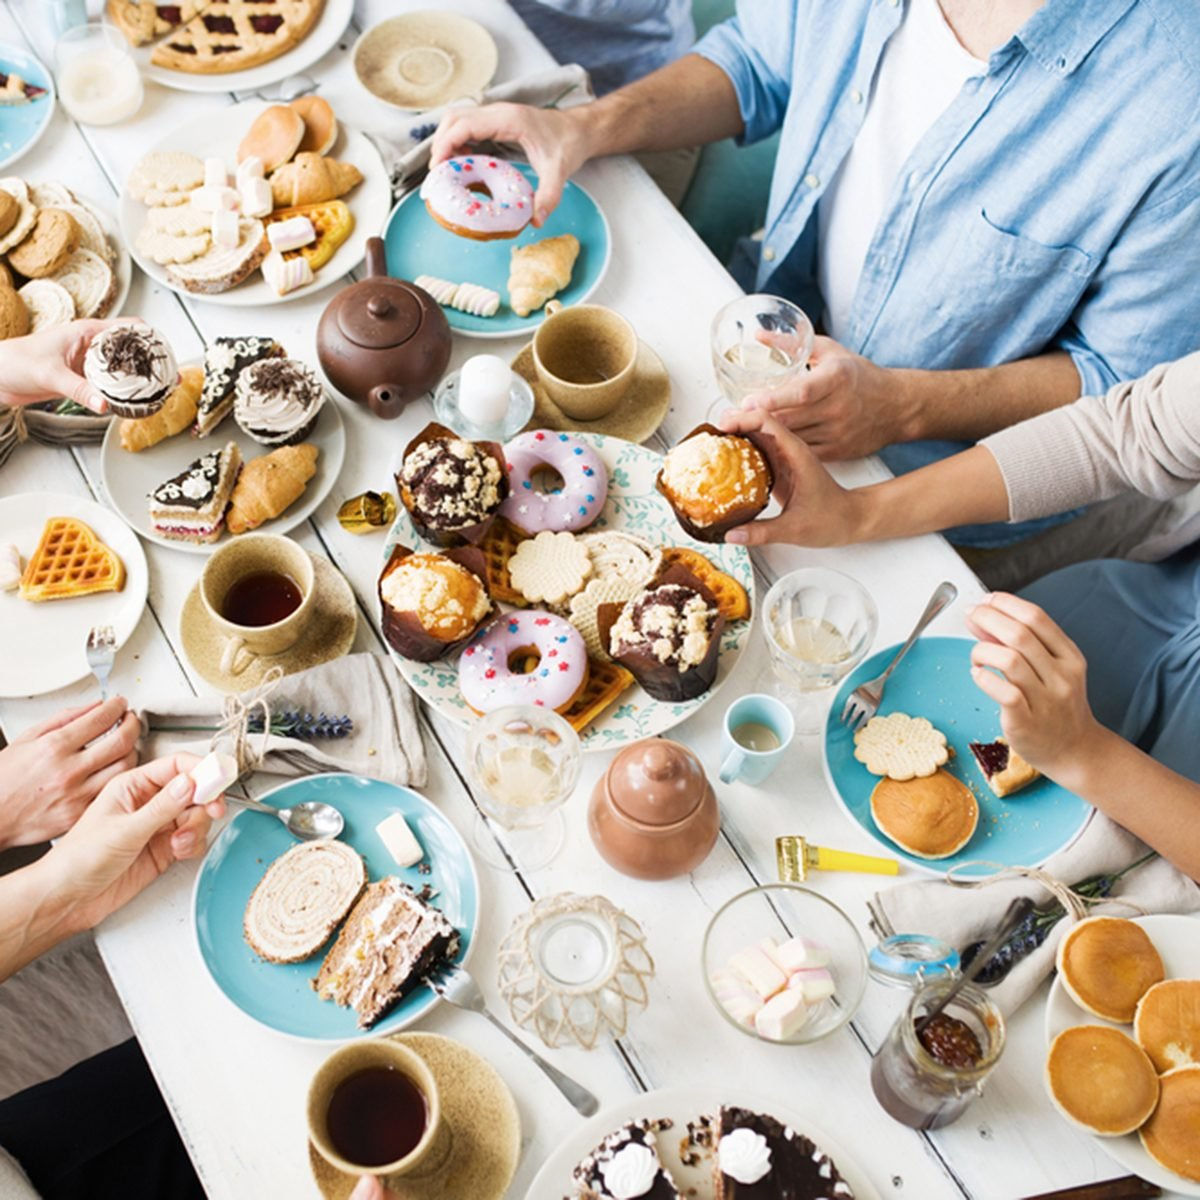 10 tea party ideas fit for a queen taste of home friends gathered for birthday celebration having fresh homemade puffs and pastry with tea by served table forumfinder Image collections